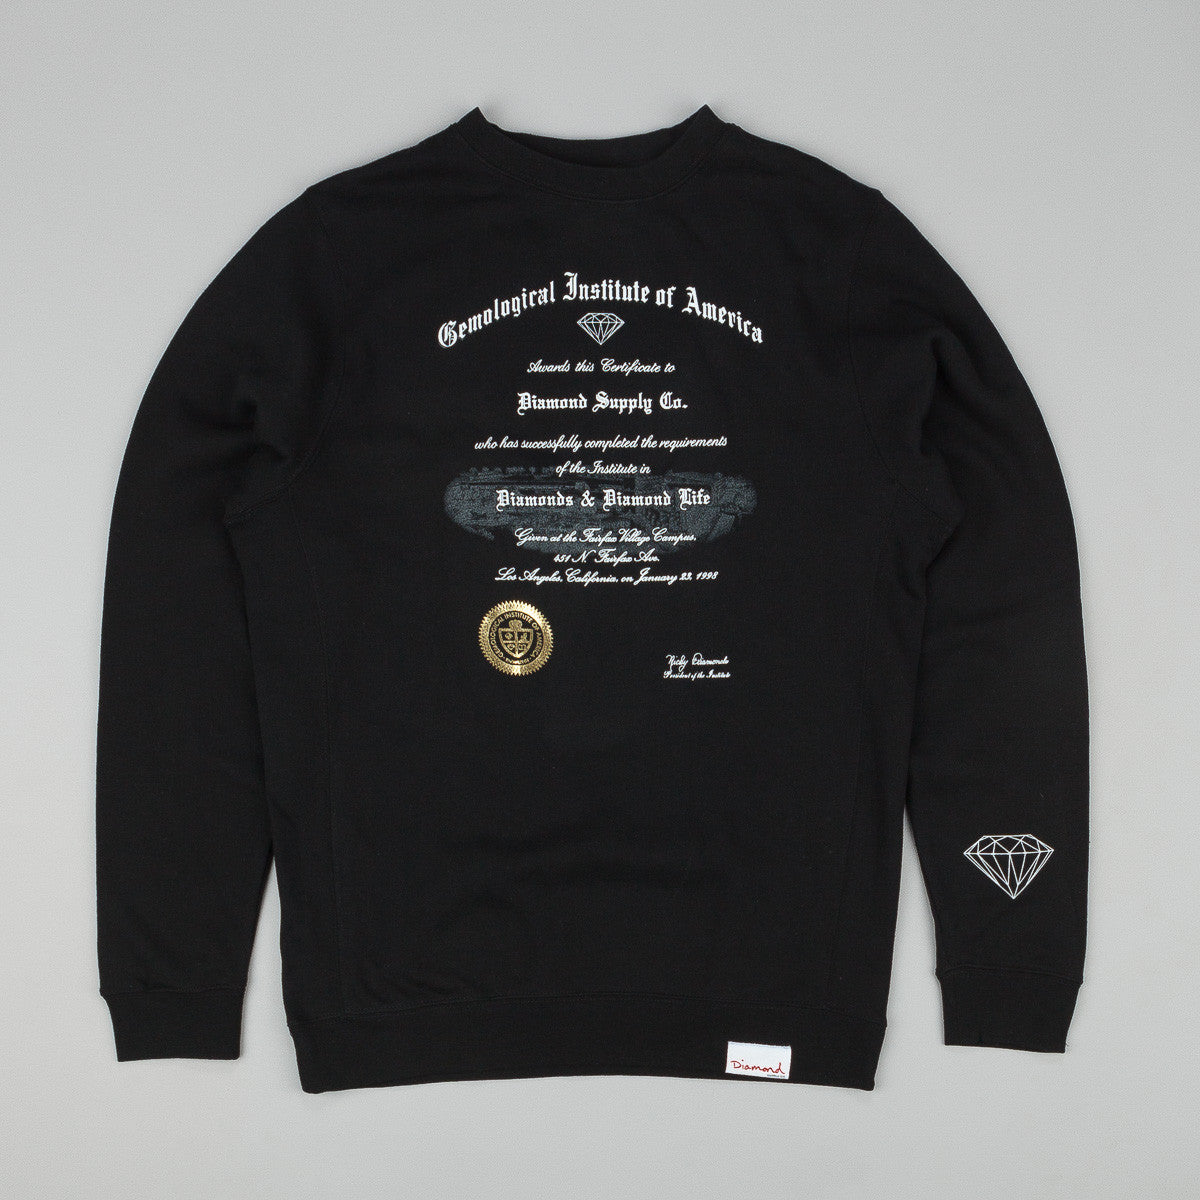 Diamond Gem Institute Crew Neck Sweatshirt Black